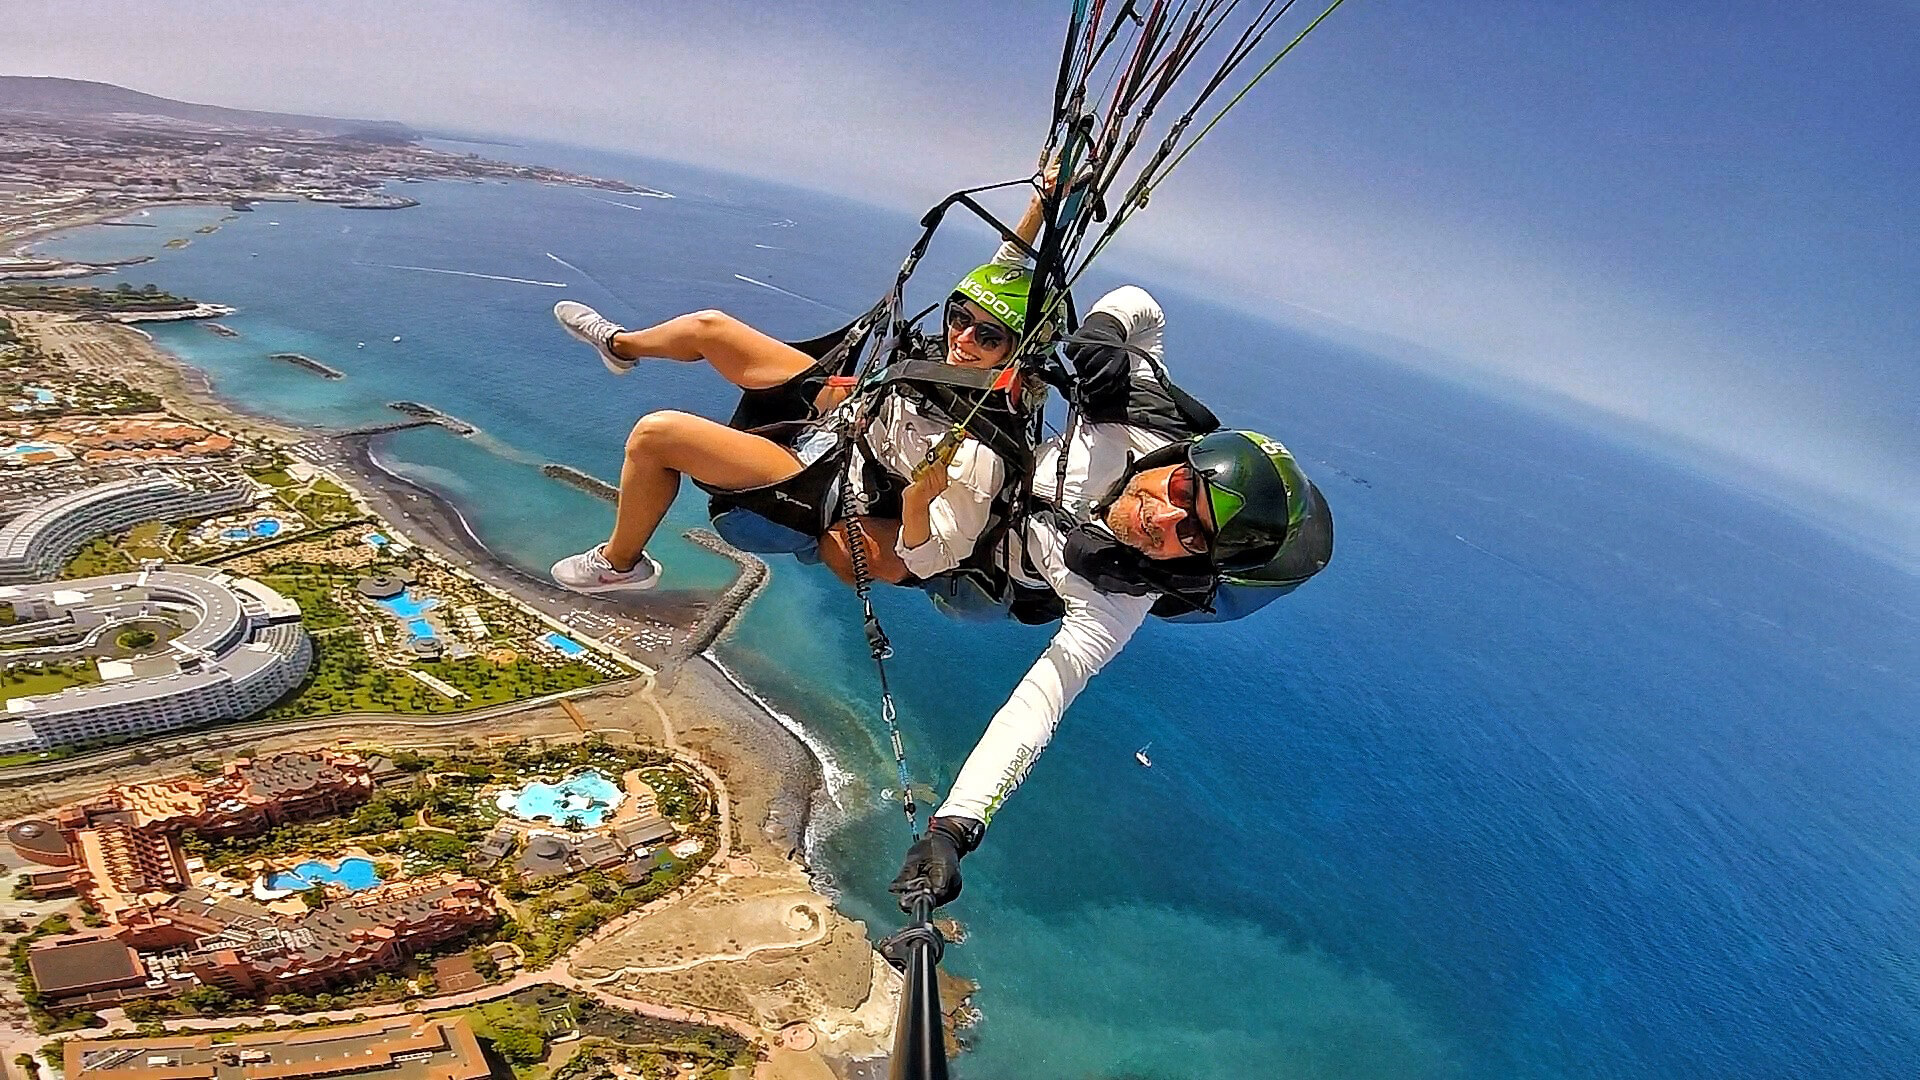 paragliding tandem above the hotels of costa adeje